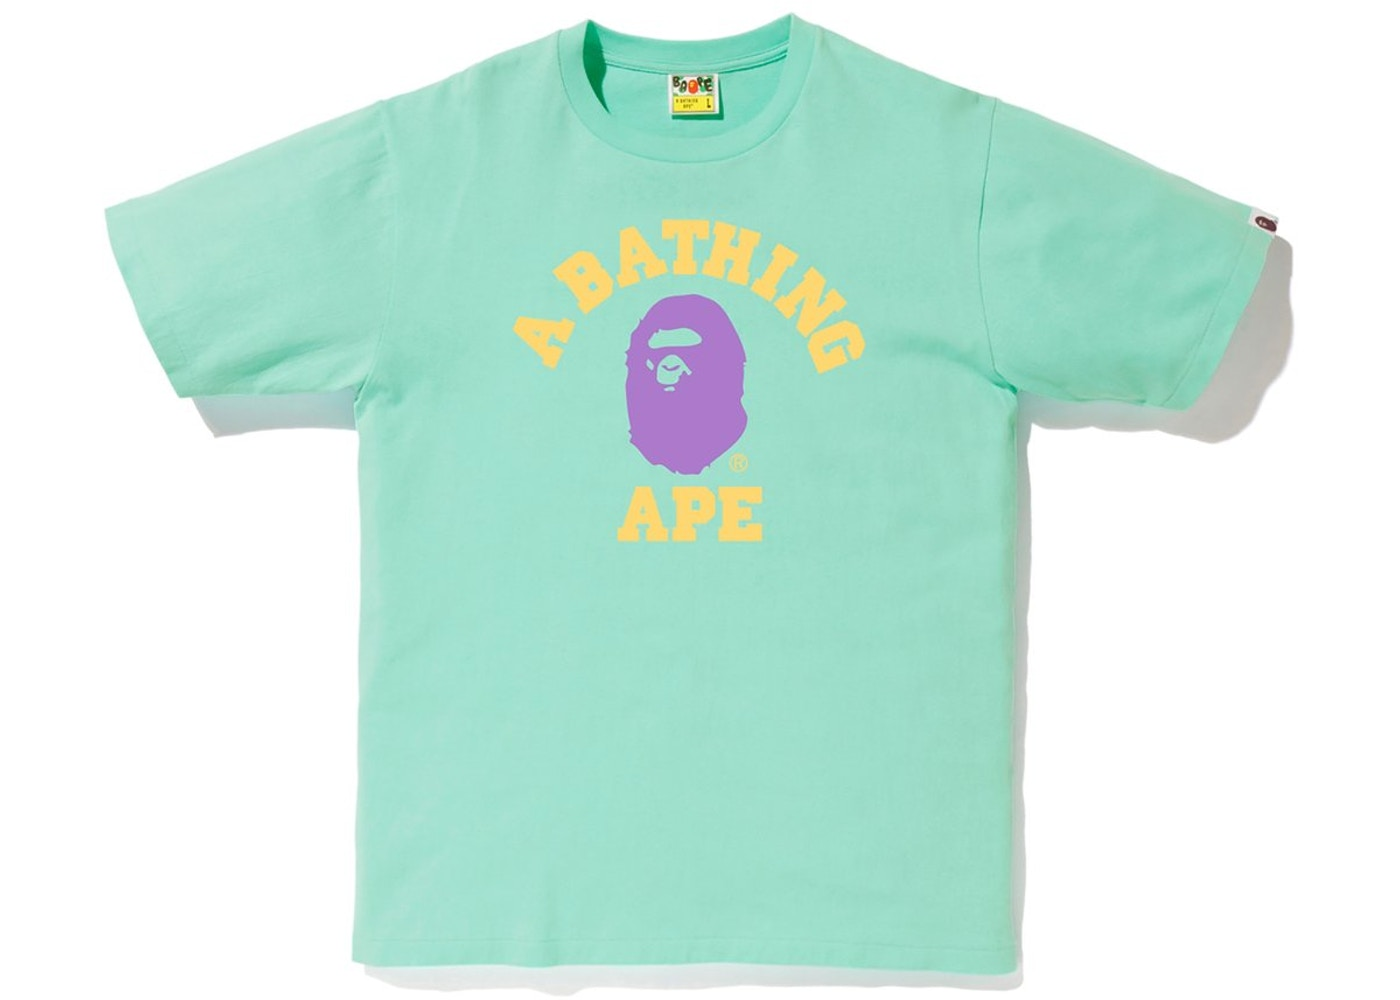 ea1048e9 Bape T-Shirts - Buy & Sell Streetwear